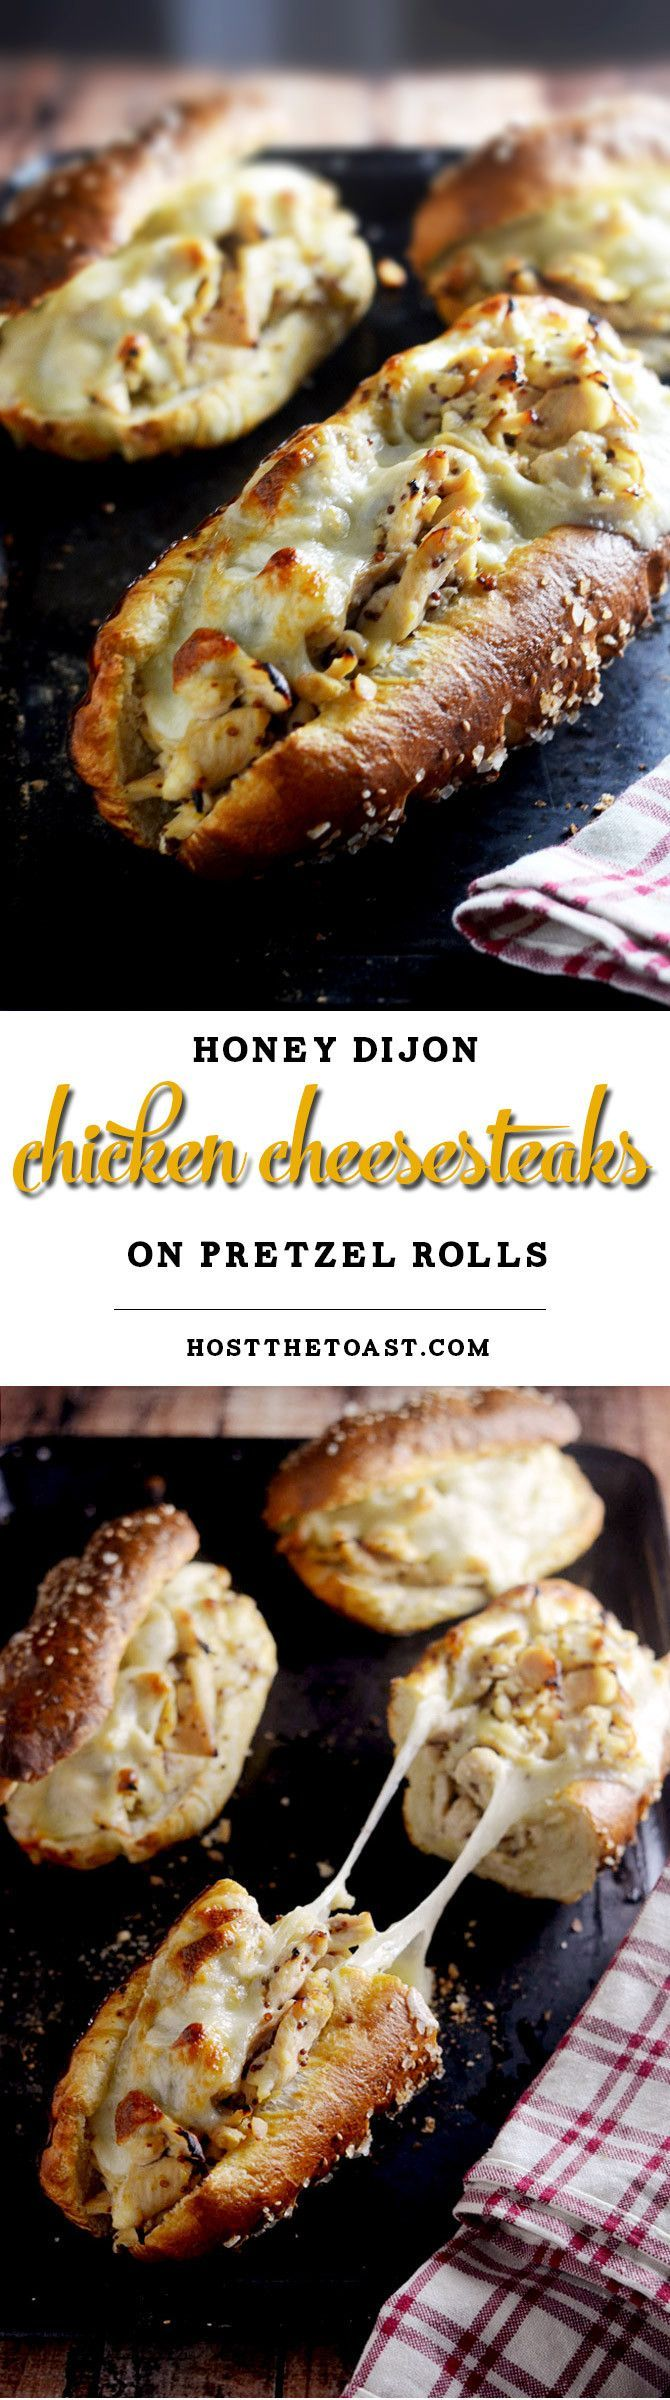 Cheesesteak di pollo al miele di Digione su Pretzel Rolls -